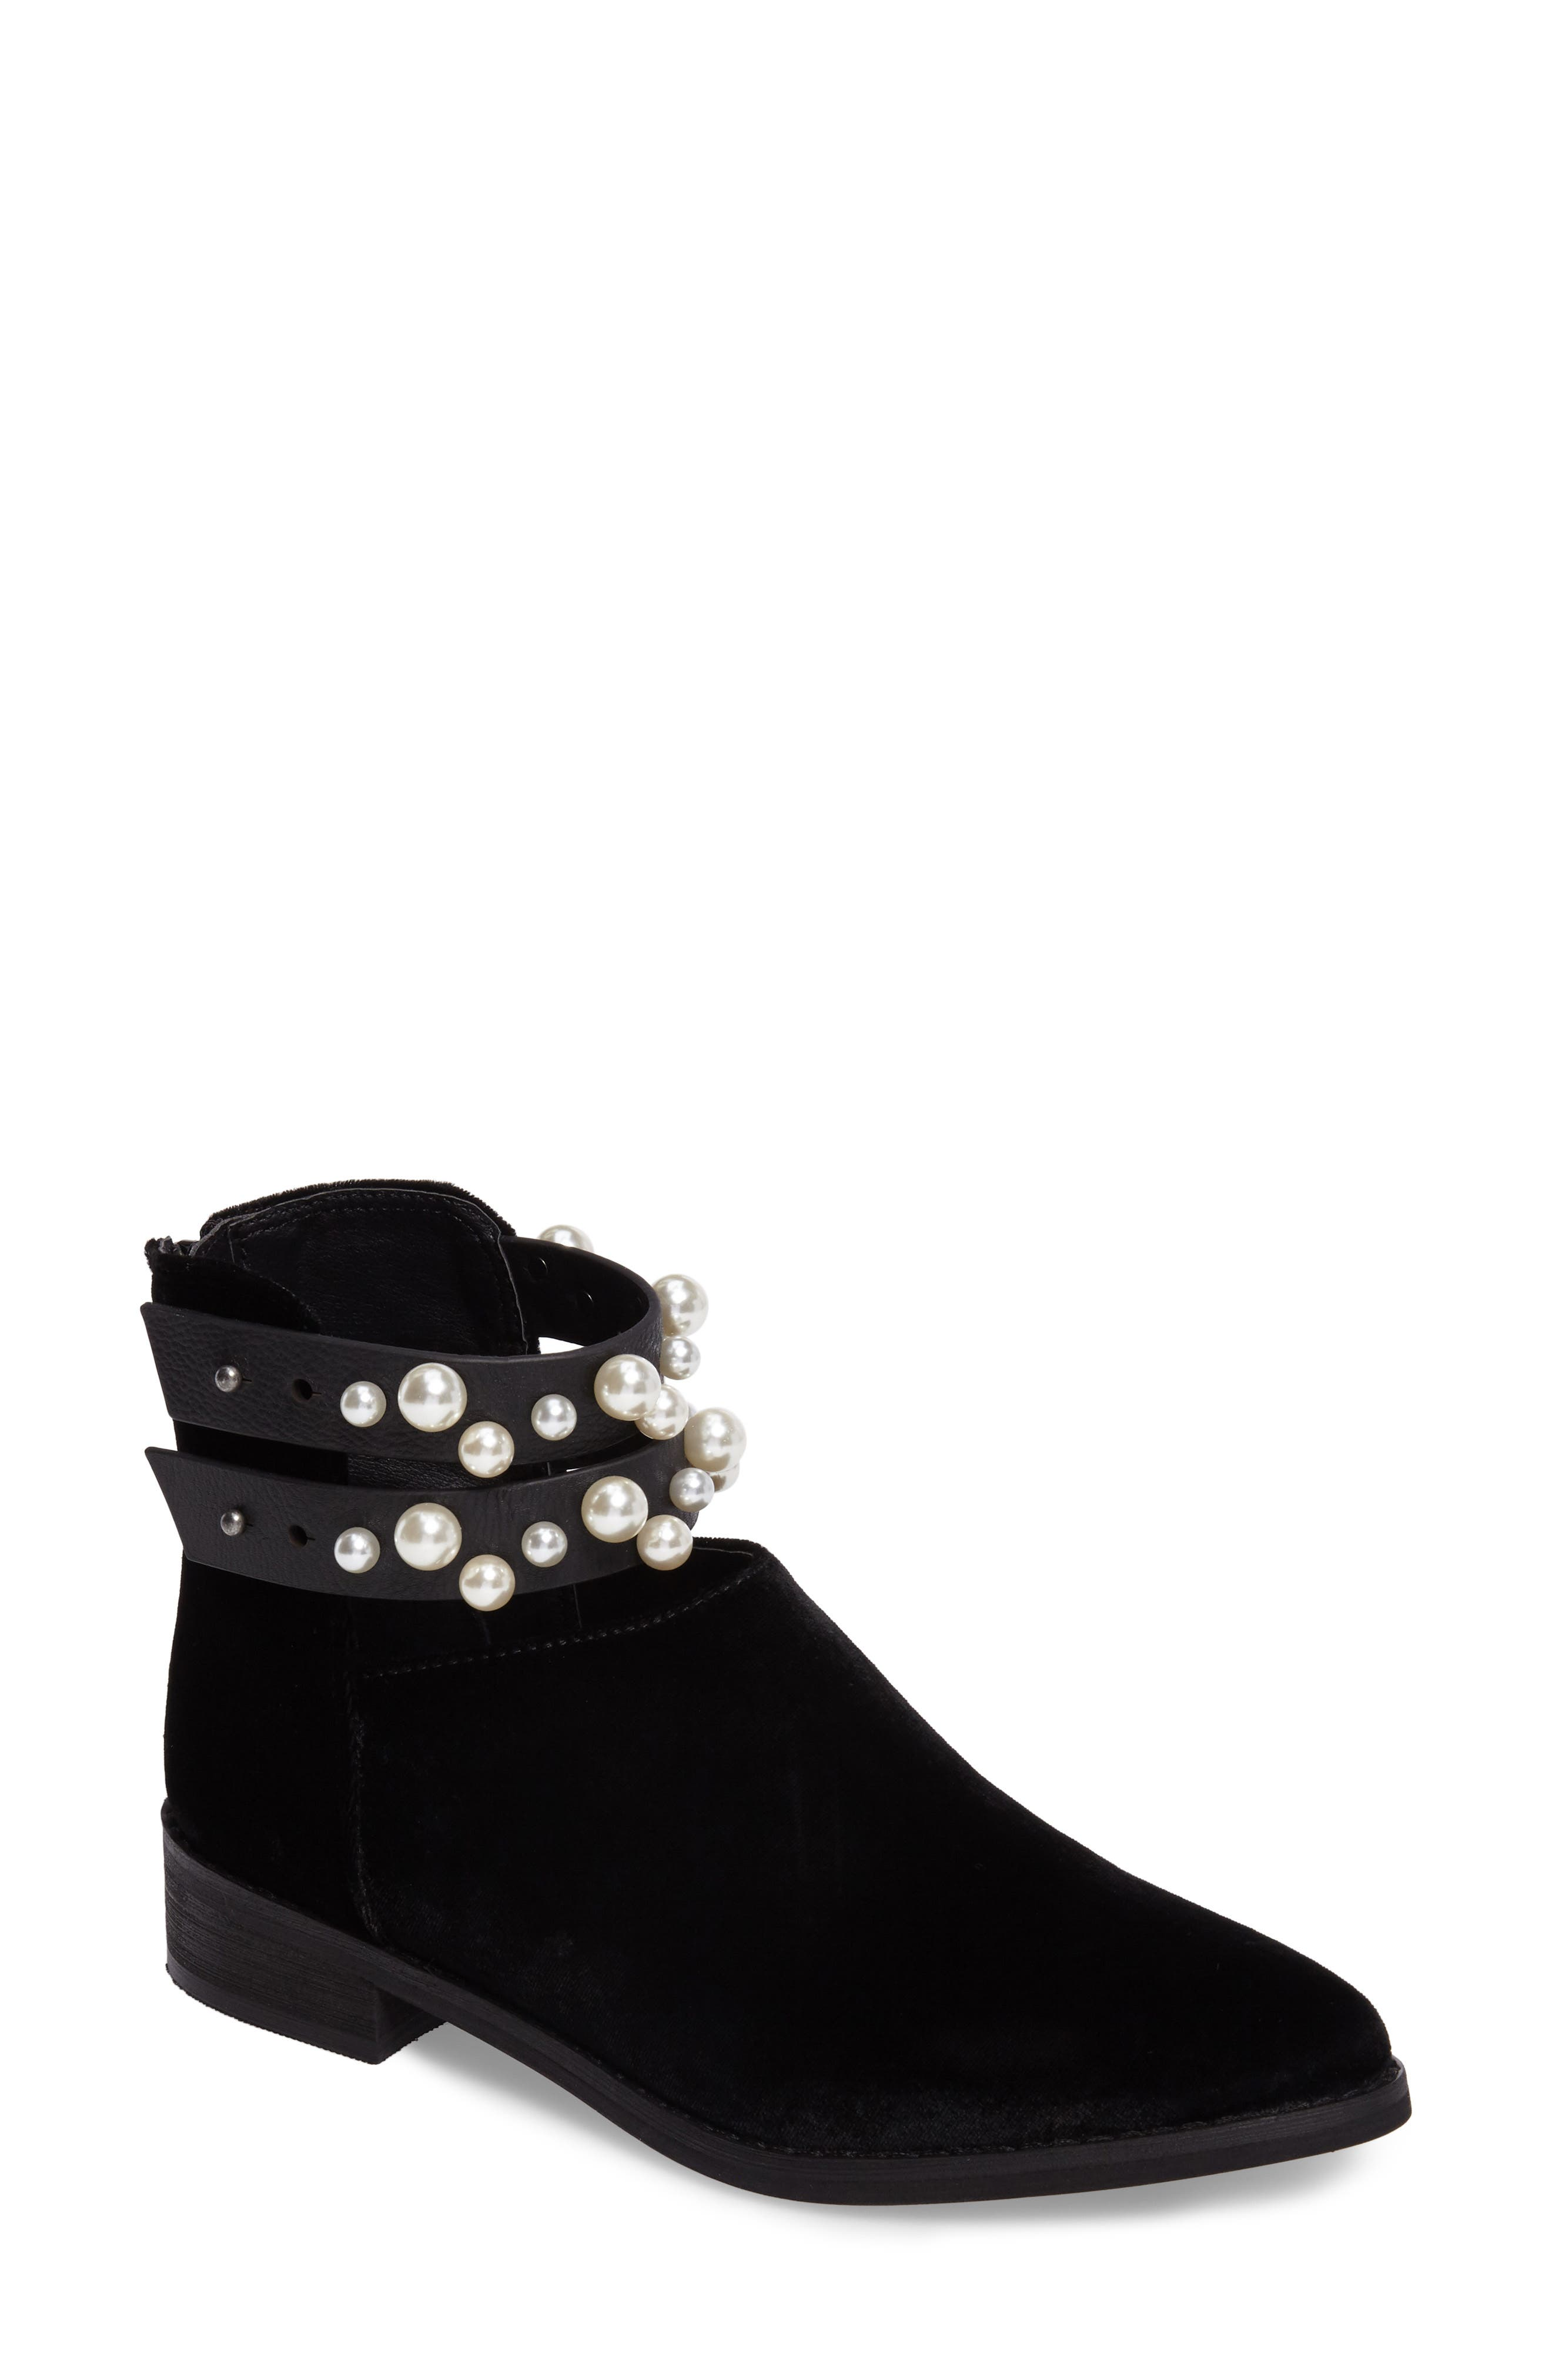 Maisie Embellished Bootie,                         Main,                         color, 001